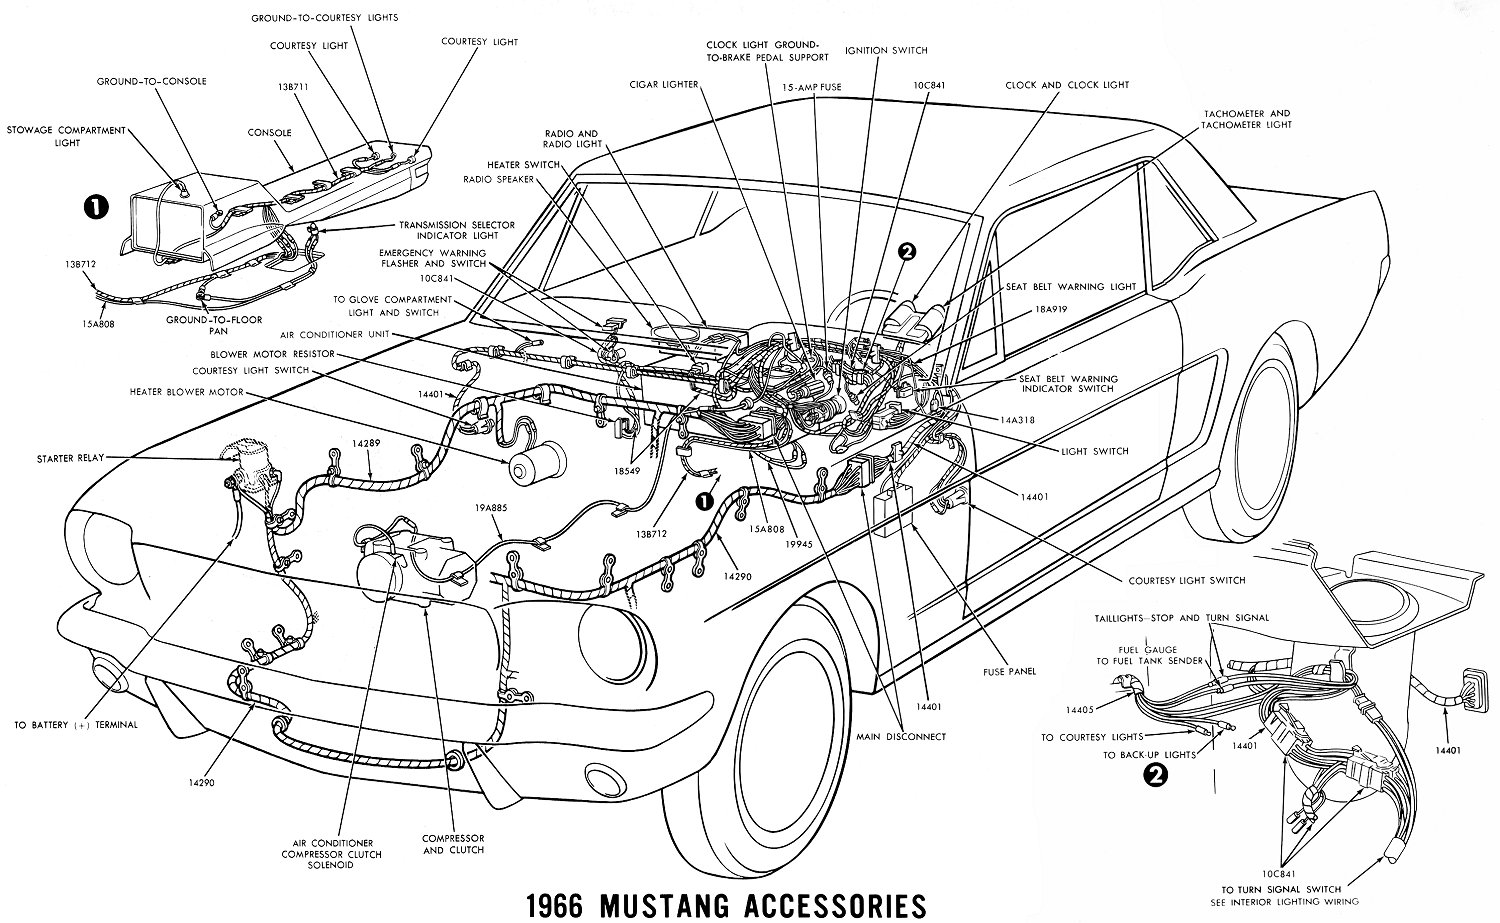 66acces 1966 mustang wiring diagrams average joe restoration 66 mustang engine wiring diagram free at soozxer.org